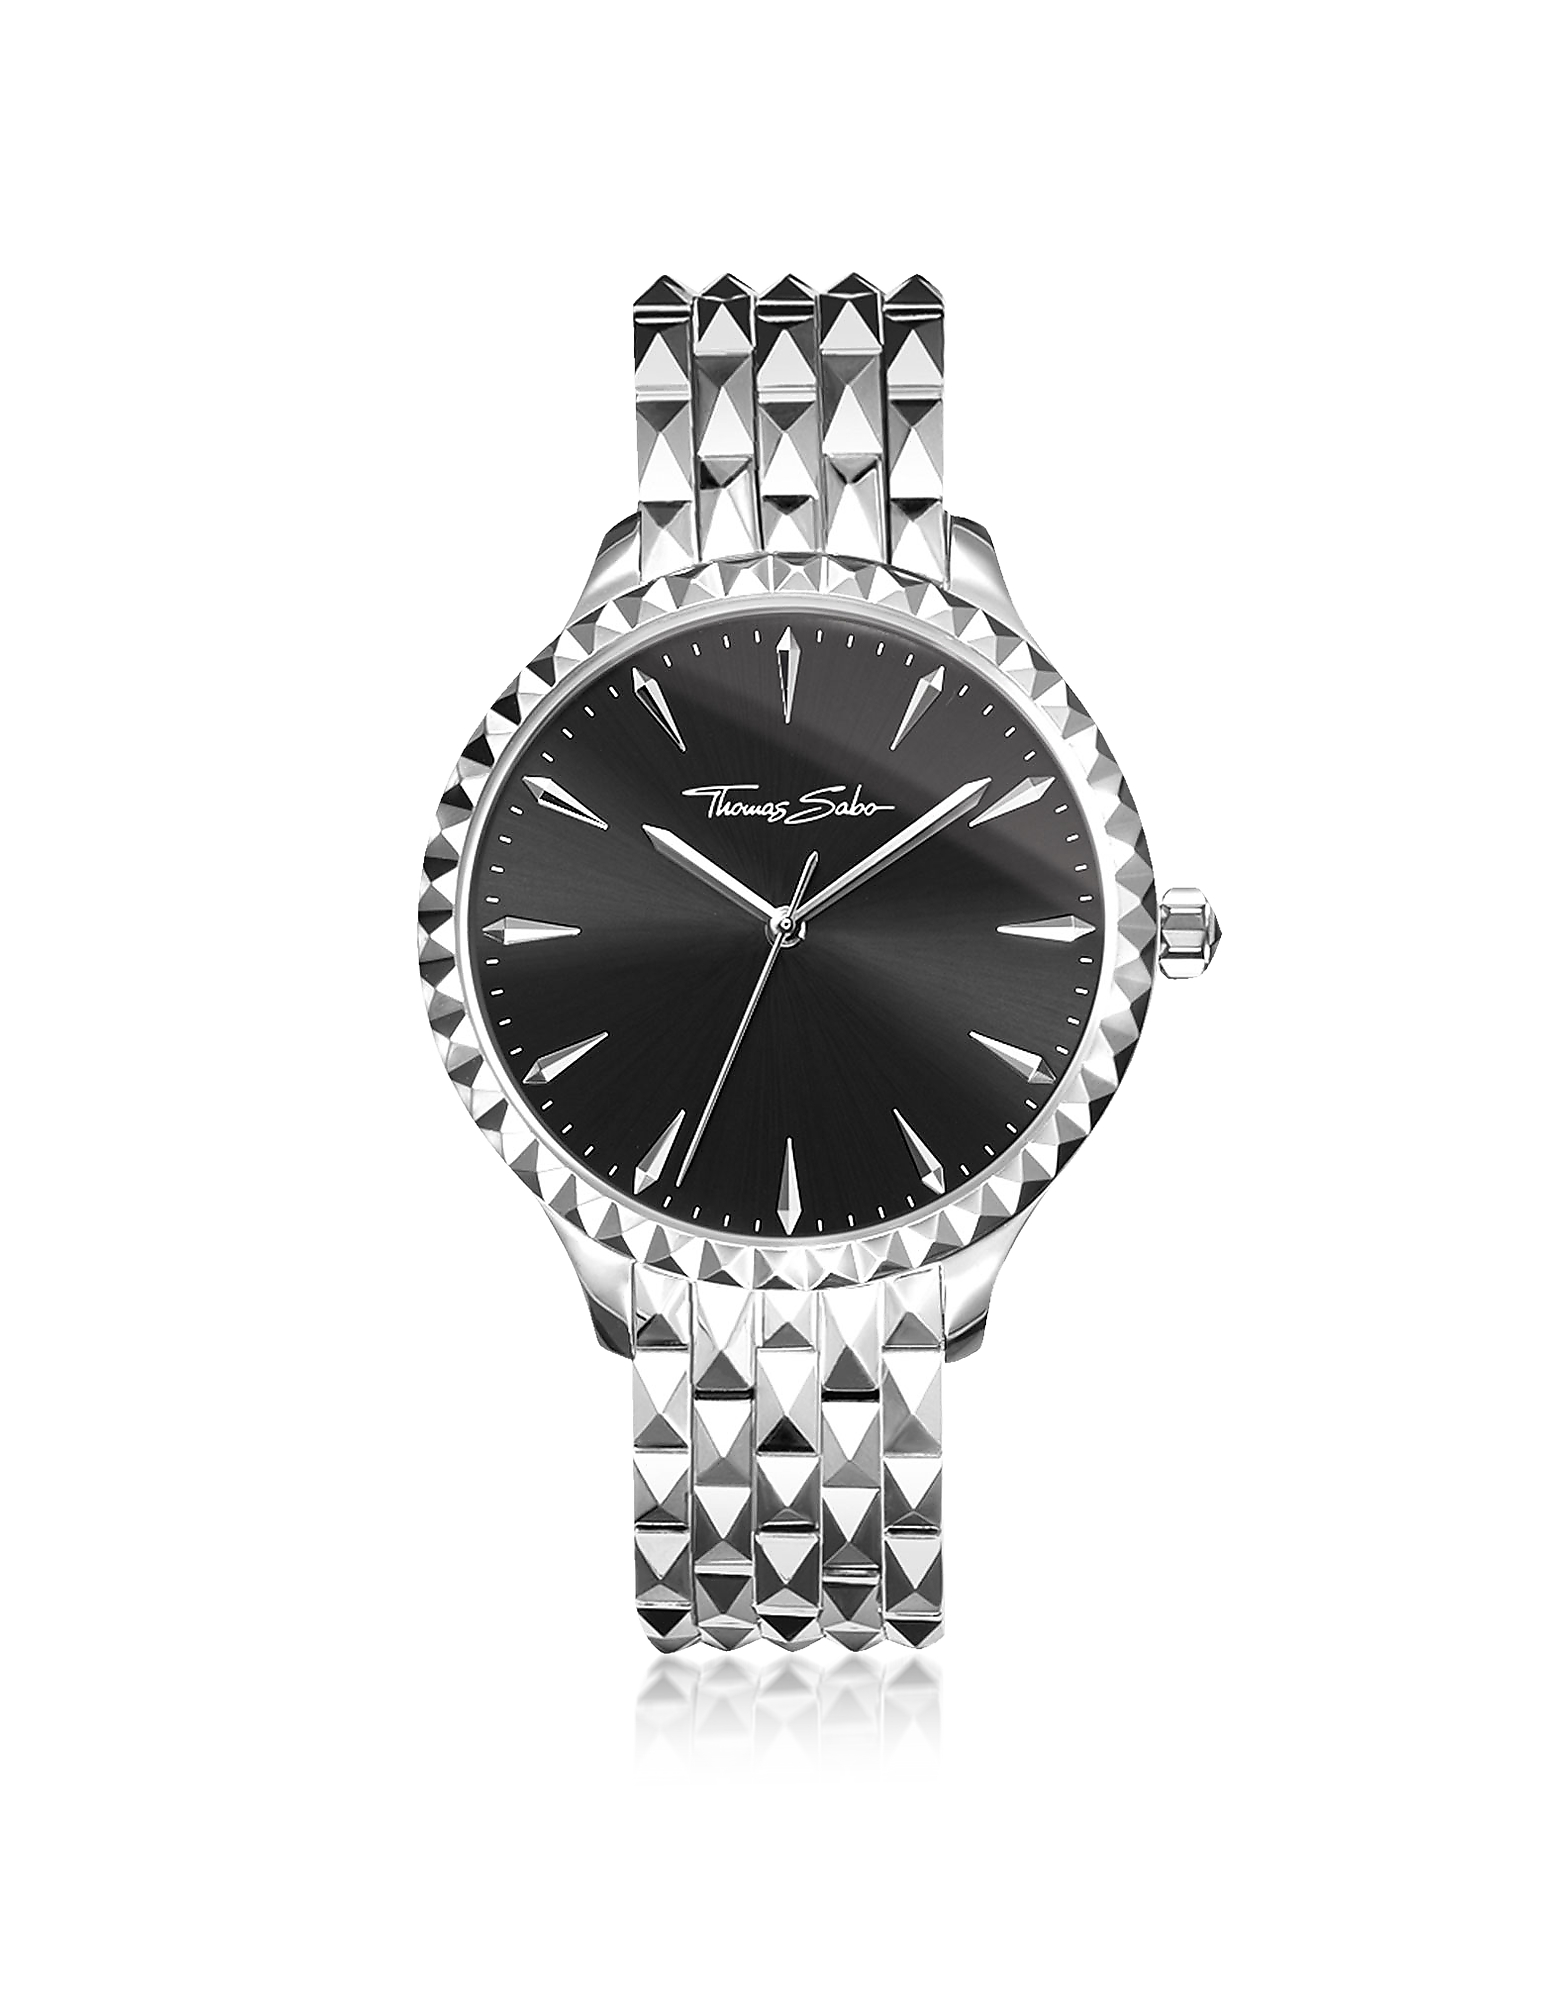 Rebel at Heart Silver Stainless Steel Women's Watch w/Black Dial